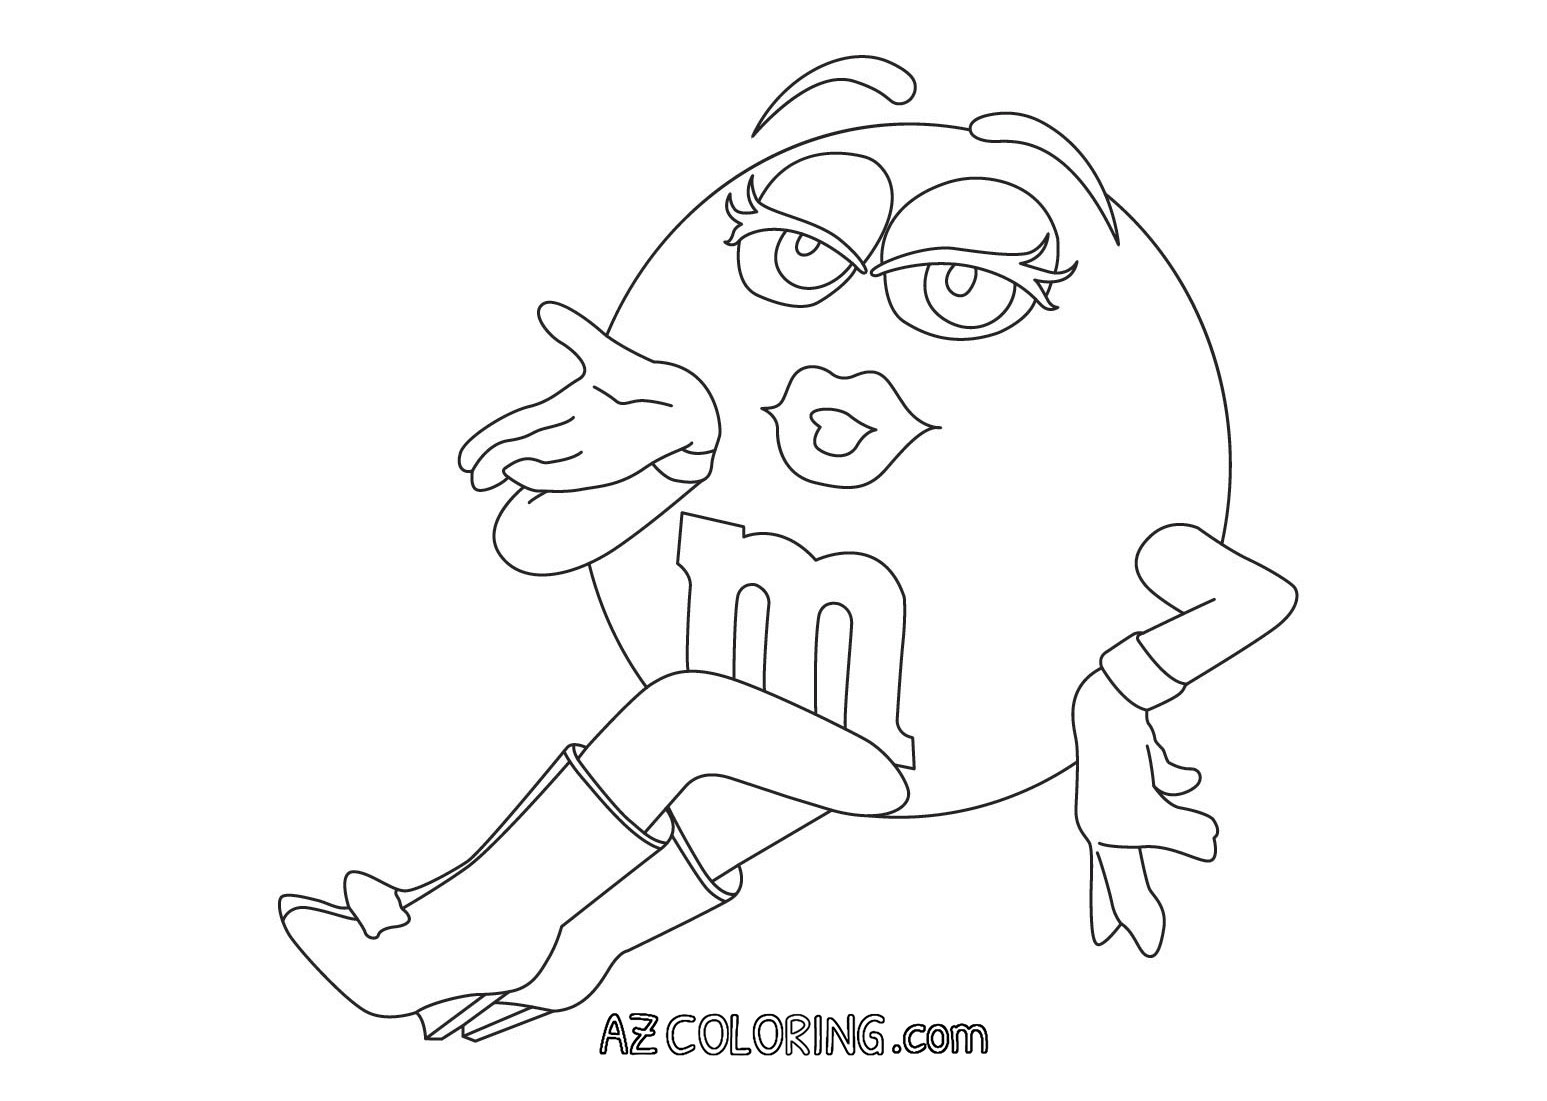 28 best Humoristic Coloring Pages for Adults images on